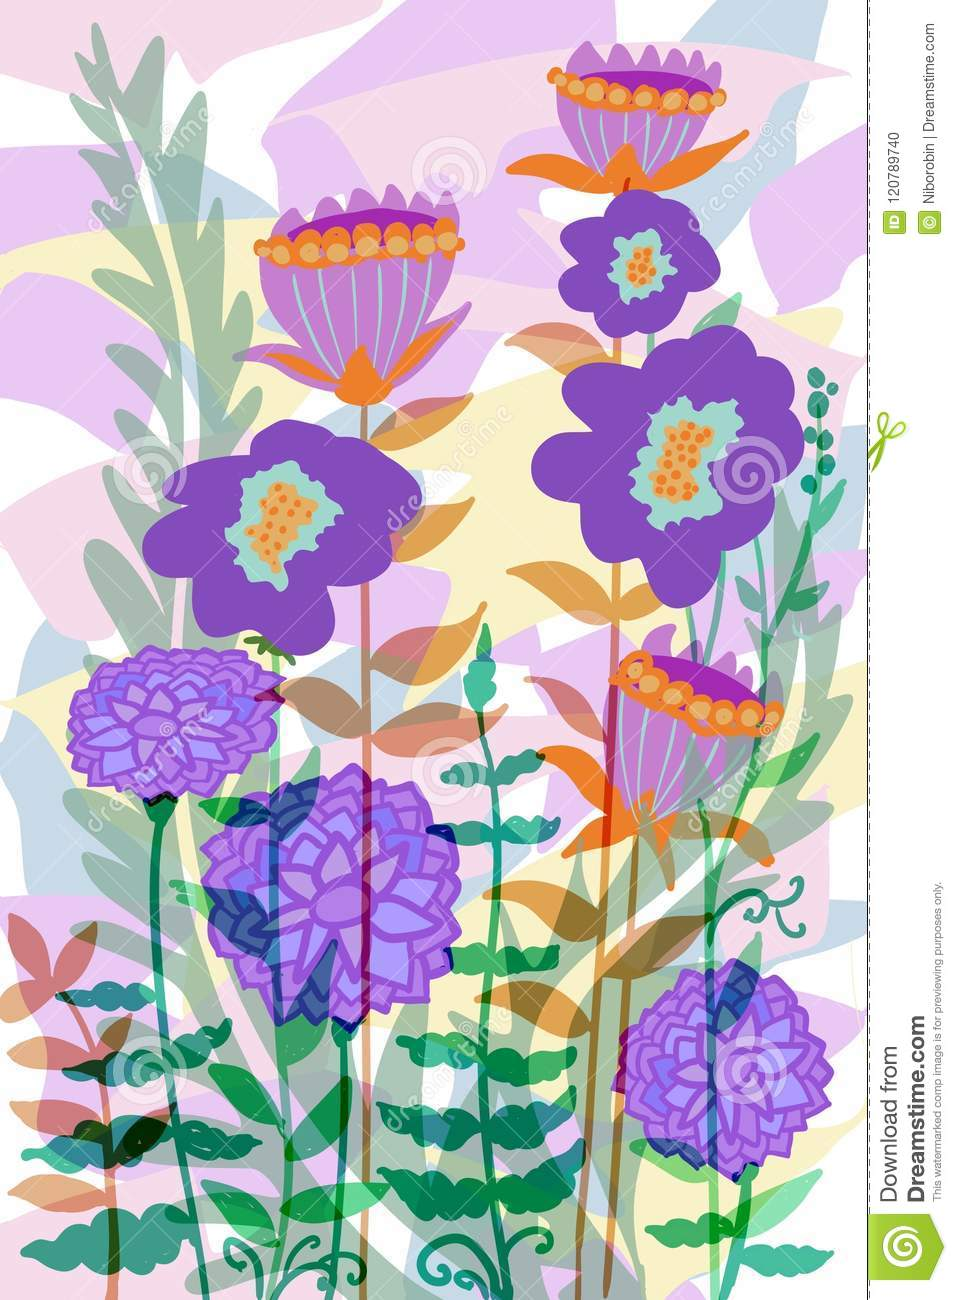 Hand Drawn Flat Floral Graphic Design For Covers Posters